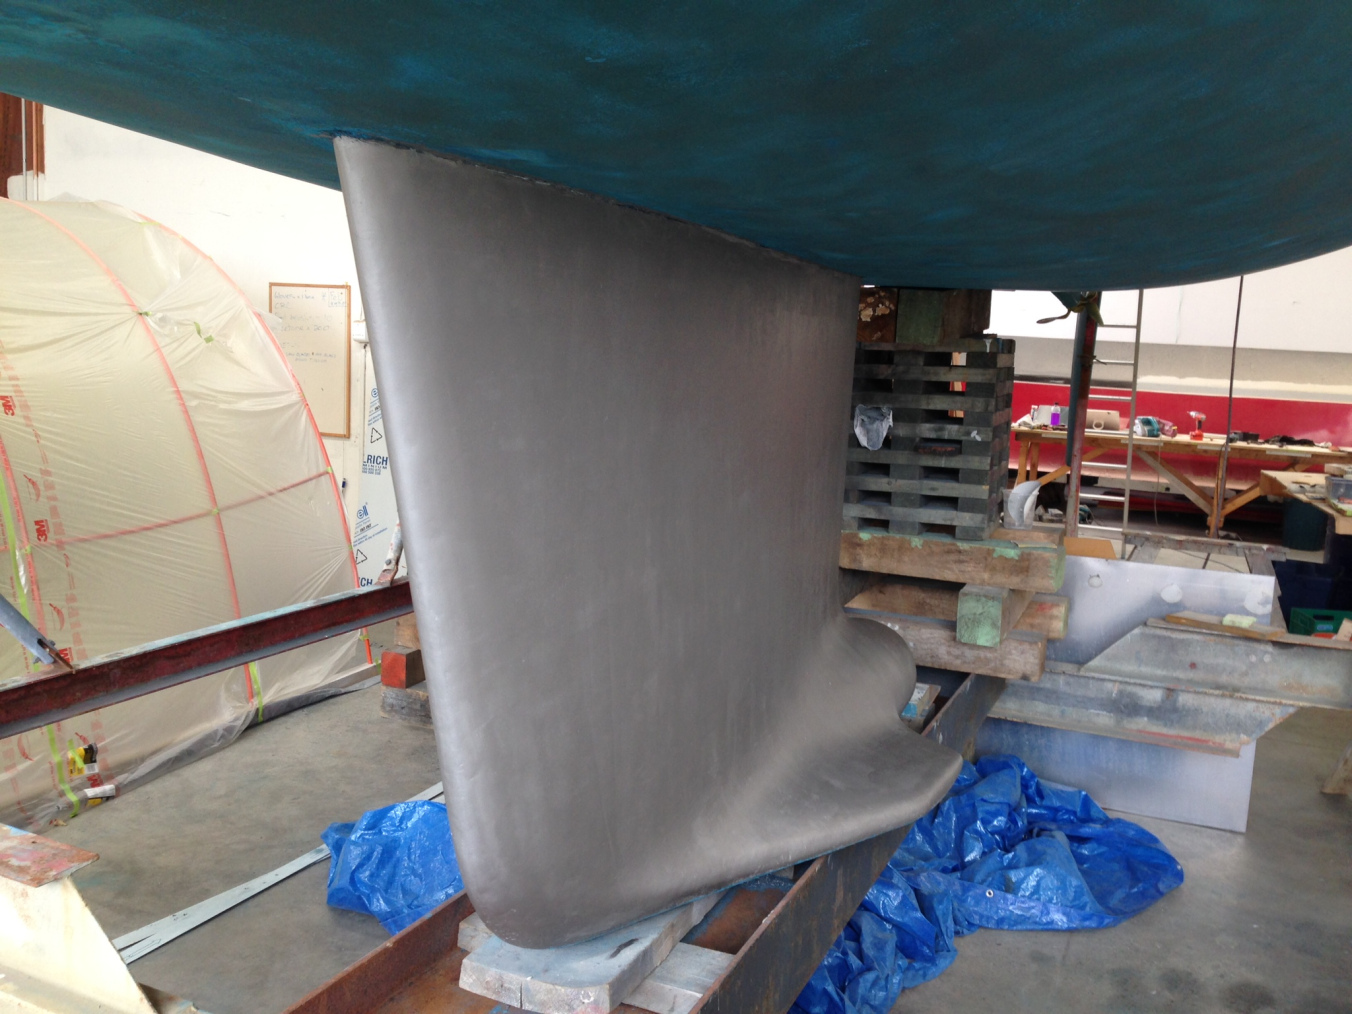 So much of our success relies on a good keel that stays attached to the hull